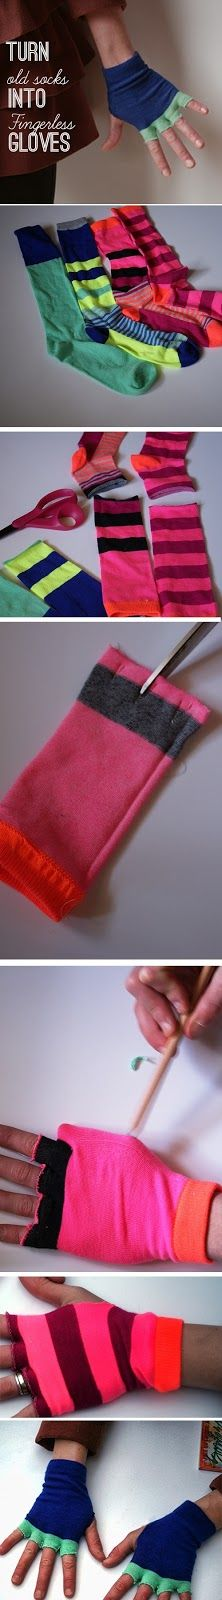 Upcycle old socks to fingerless gloves in this EASY diy Encore un autre tuto sur les chaussettes transfo en mitaines ; Fabric Crafts, Sewing Crafts, Sewing Projects, Diy Projects, Fun Crafts, Diy And Crafts, Sock Crafts, Creative Crafts, Alter Pullover